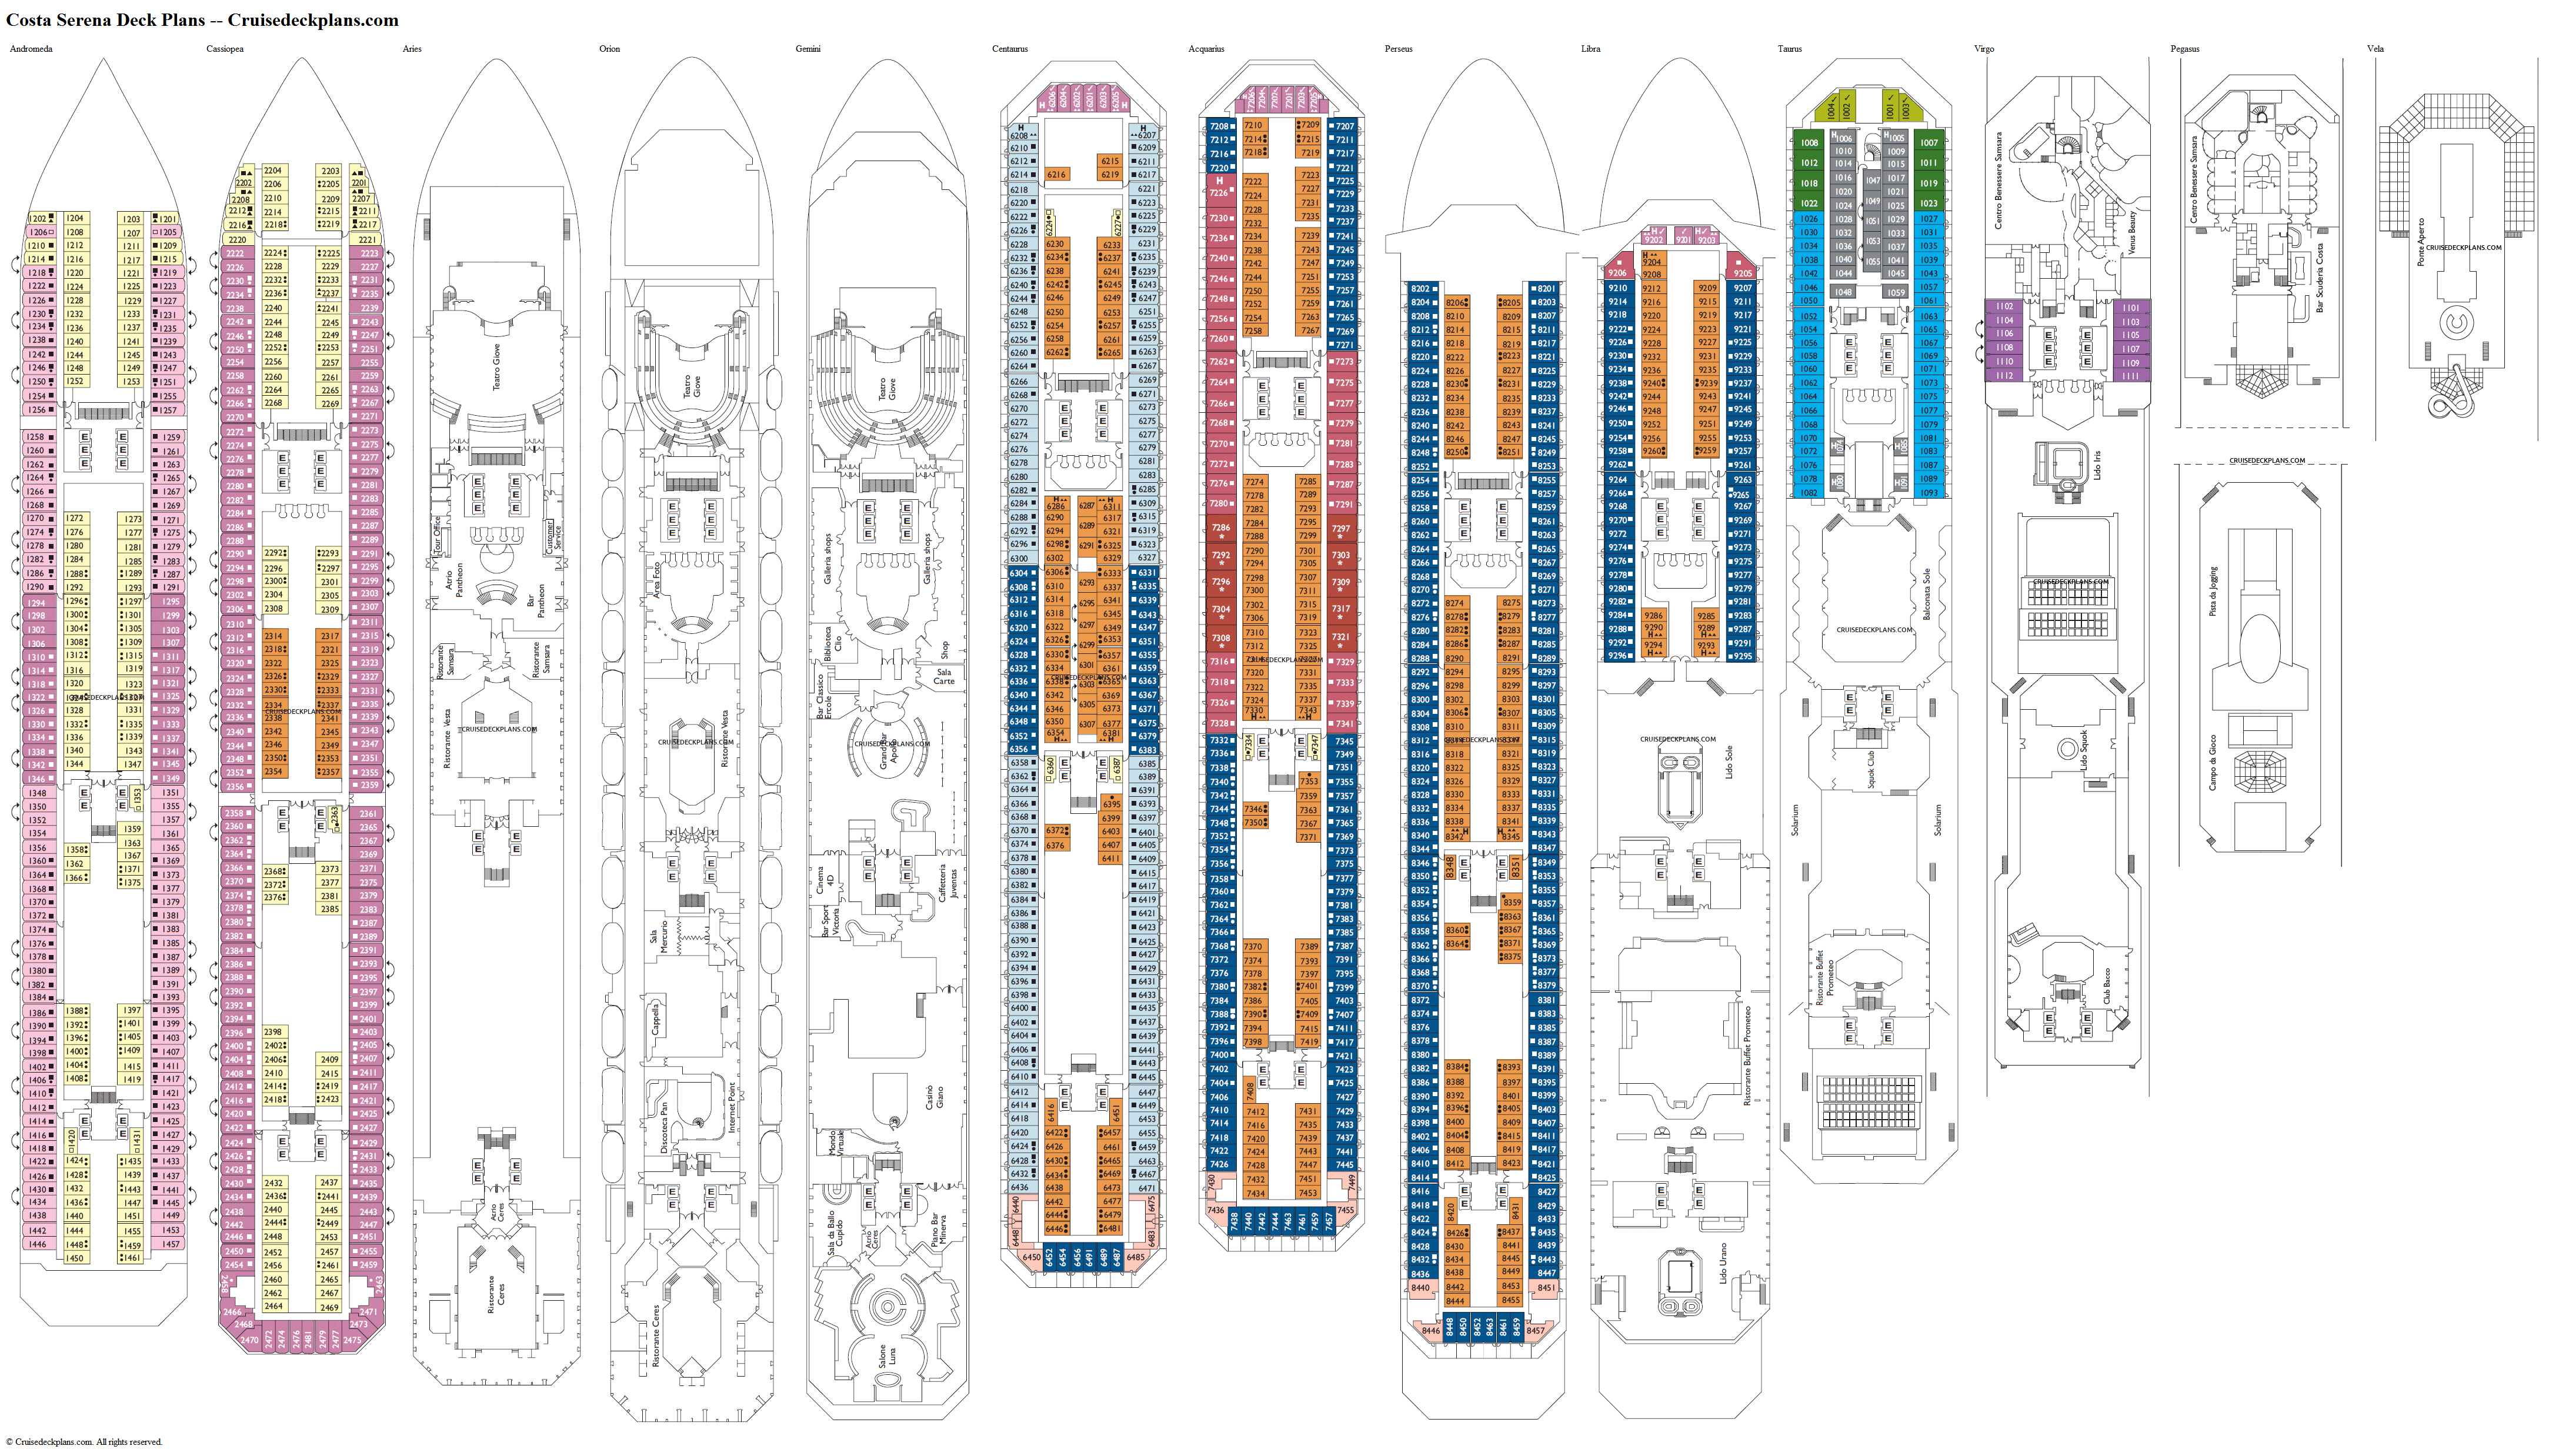 Costa Serena deck plans image